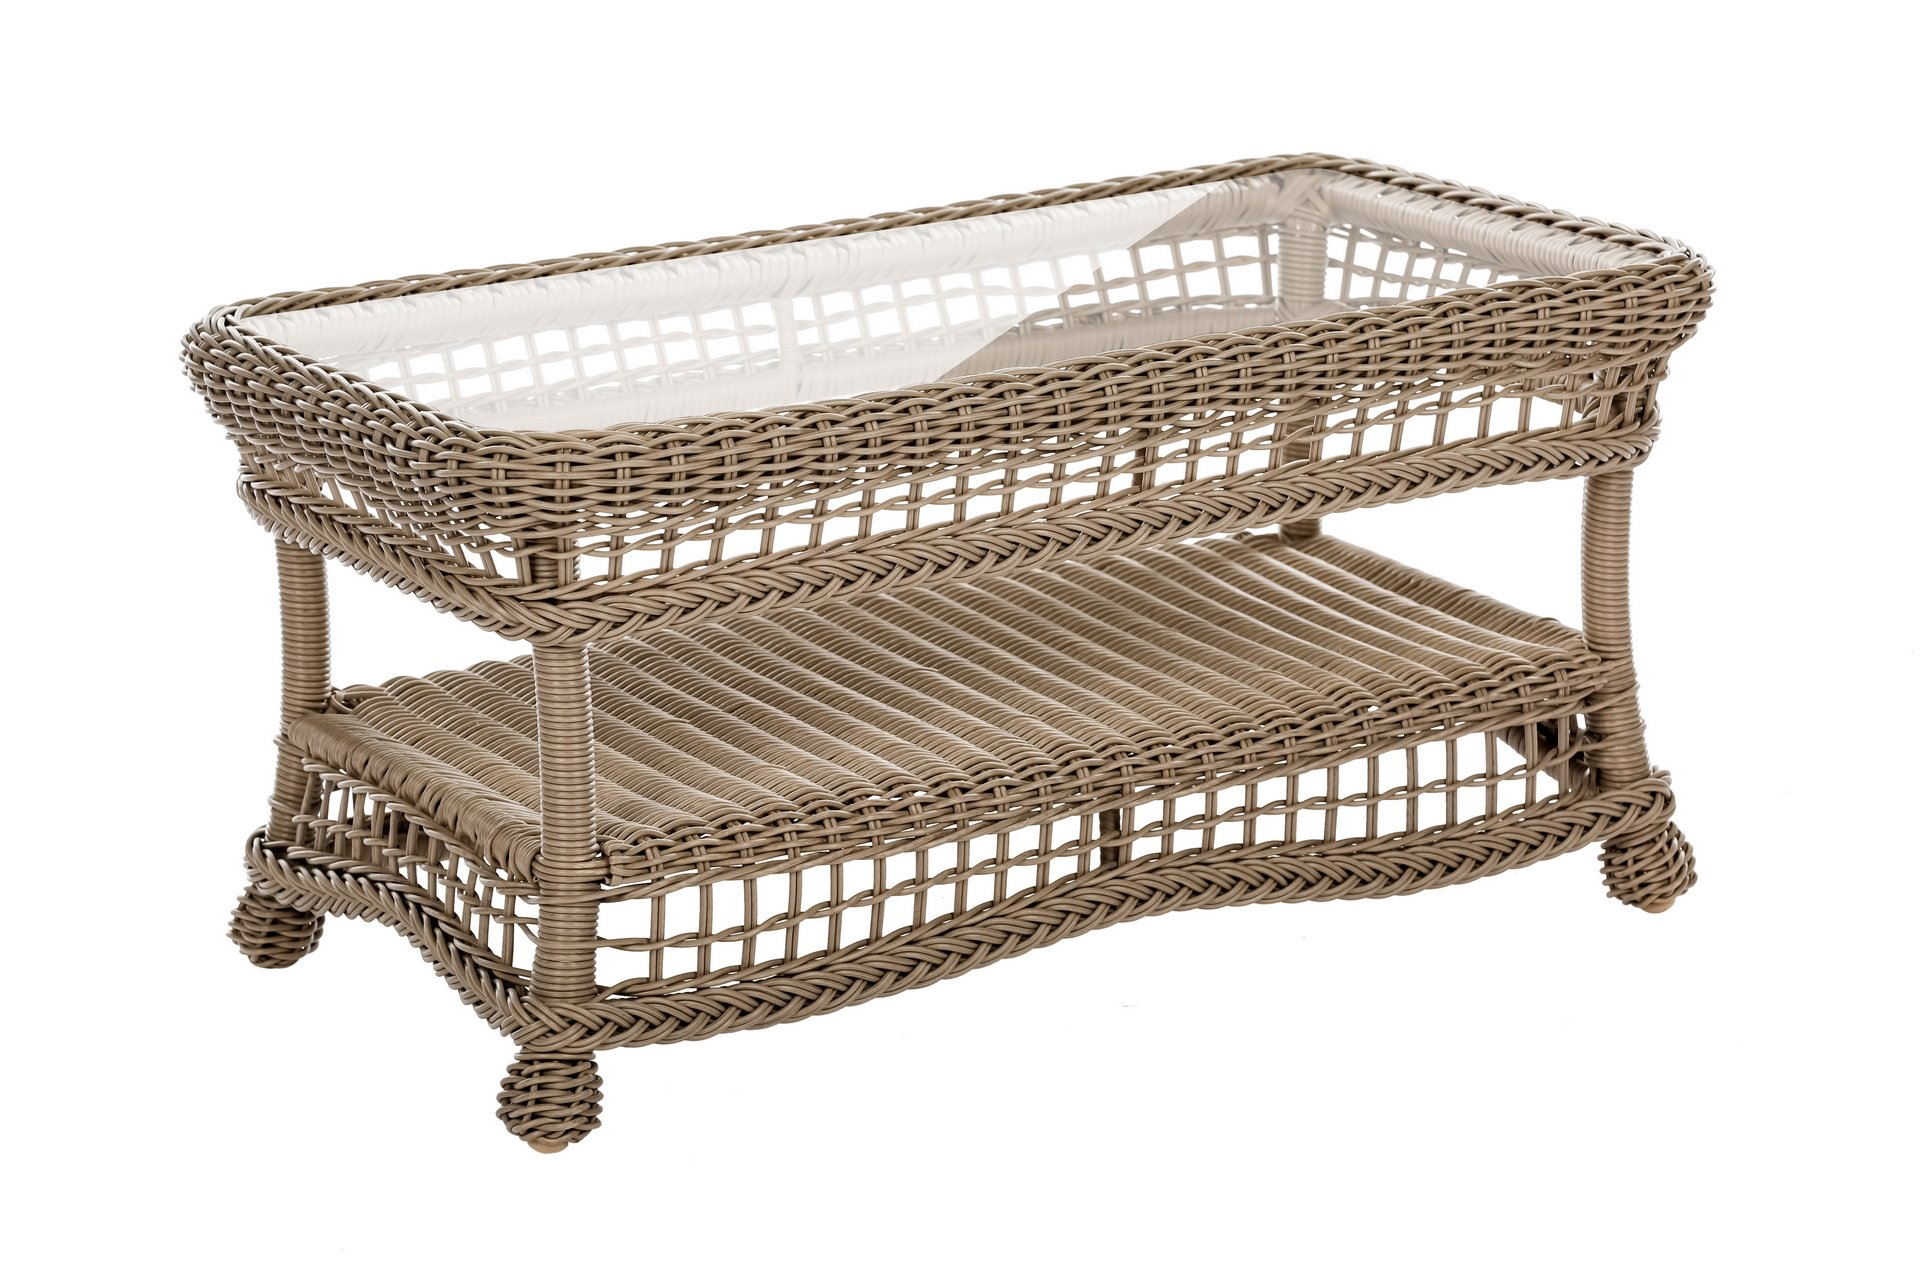 WUnlimited SW1308-CT Saturn Collection Outdoor Garden Patio Coffee Table, Light Brown